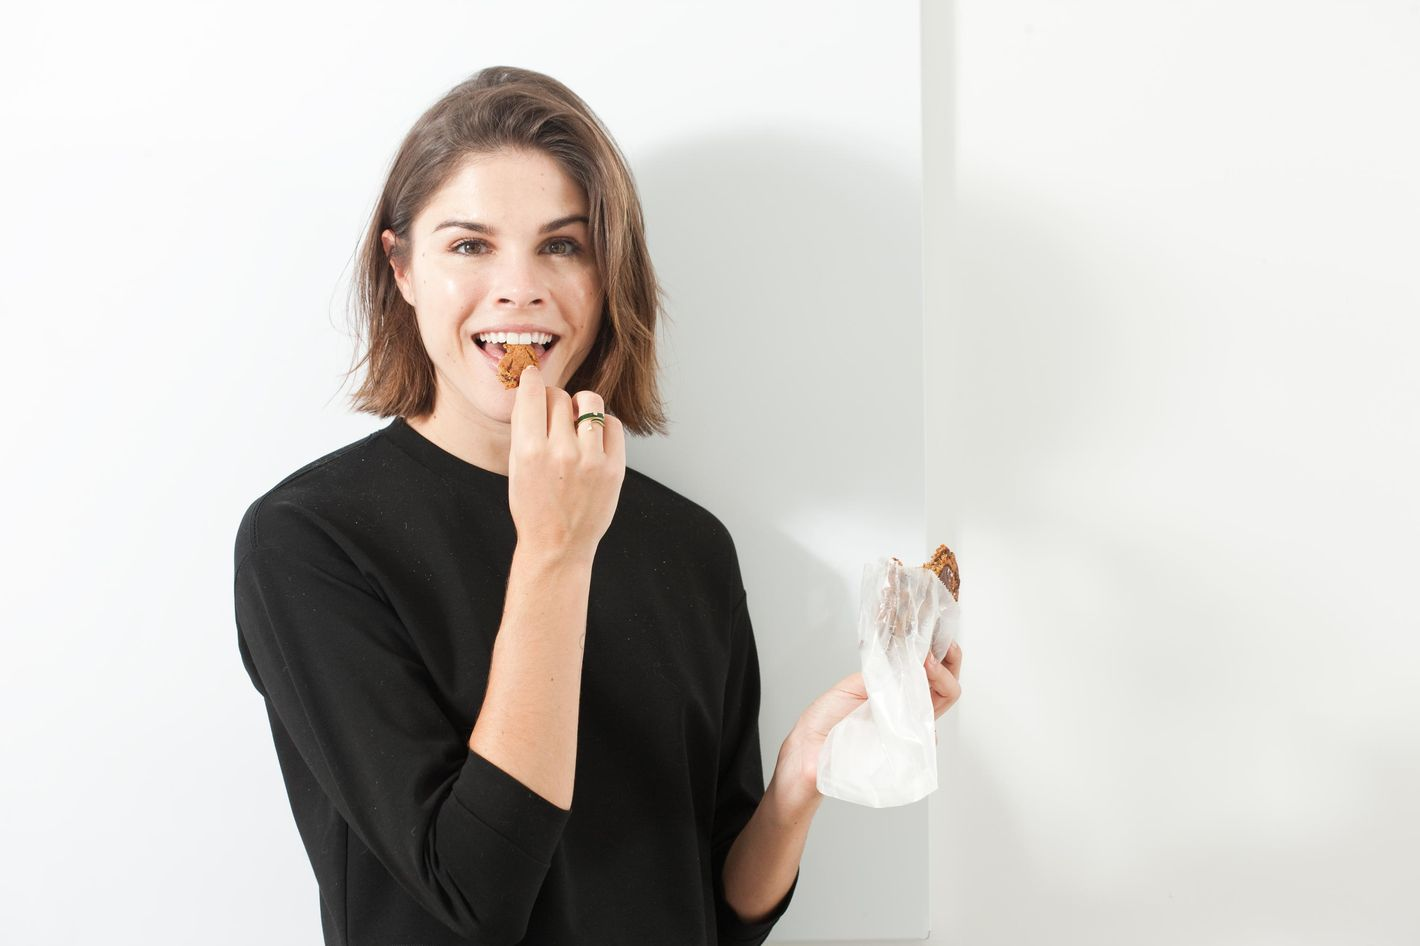 Glossier Founder Emily Weiss Balances Chocolate Croissants With ...